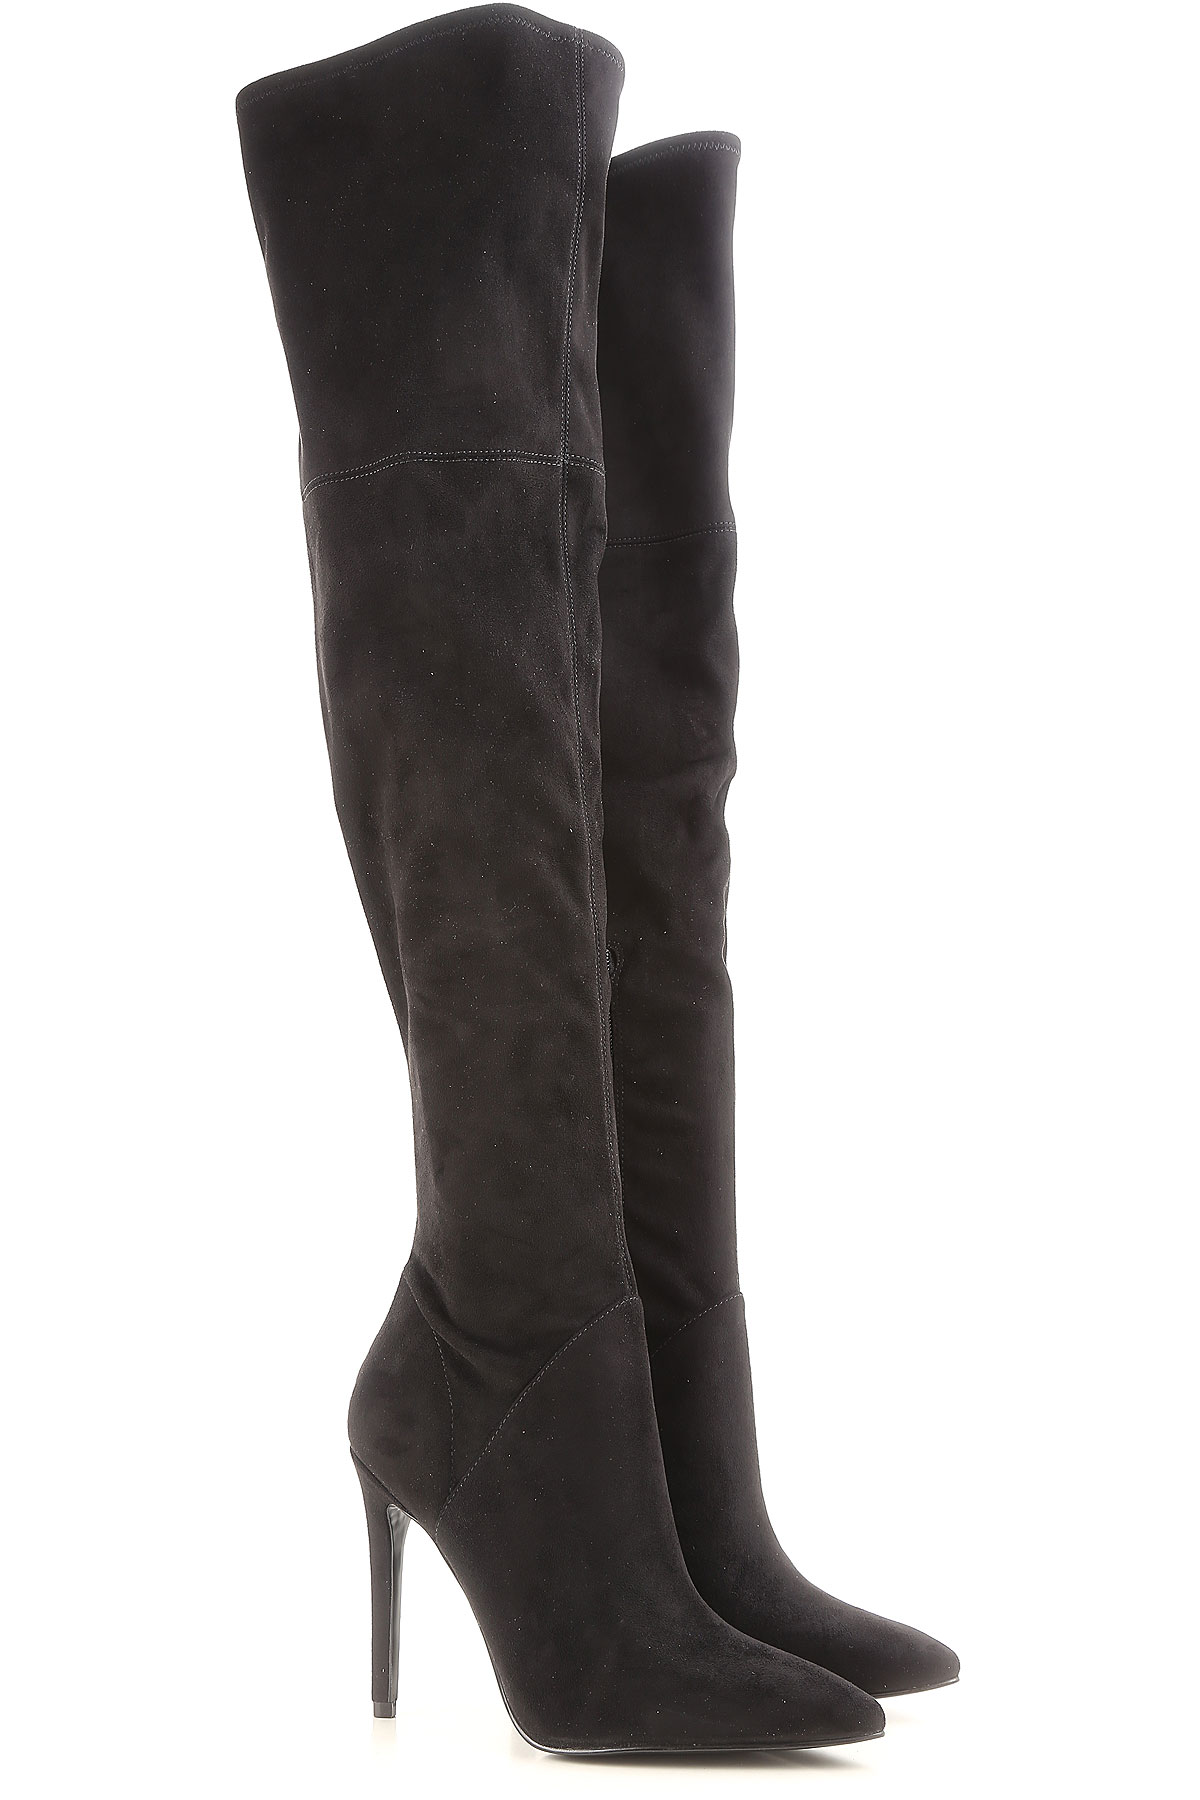 Image of Kendall Kylie Boots for Women, Booties On Sale in Outlet, Black, Suede leather, 2017, 5.5 9 9.5